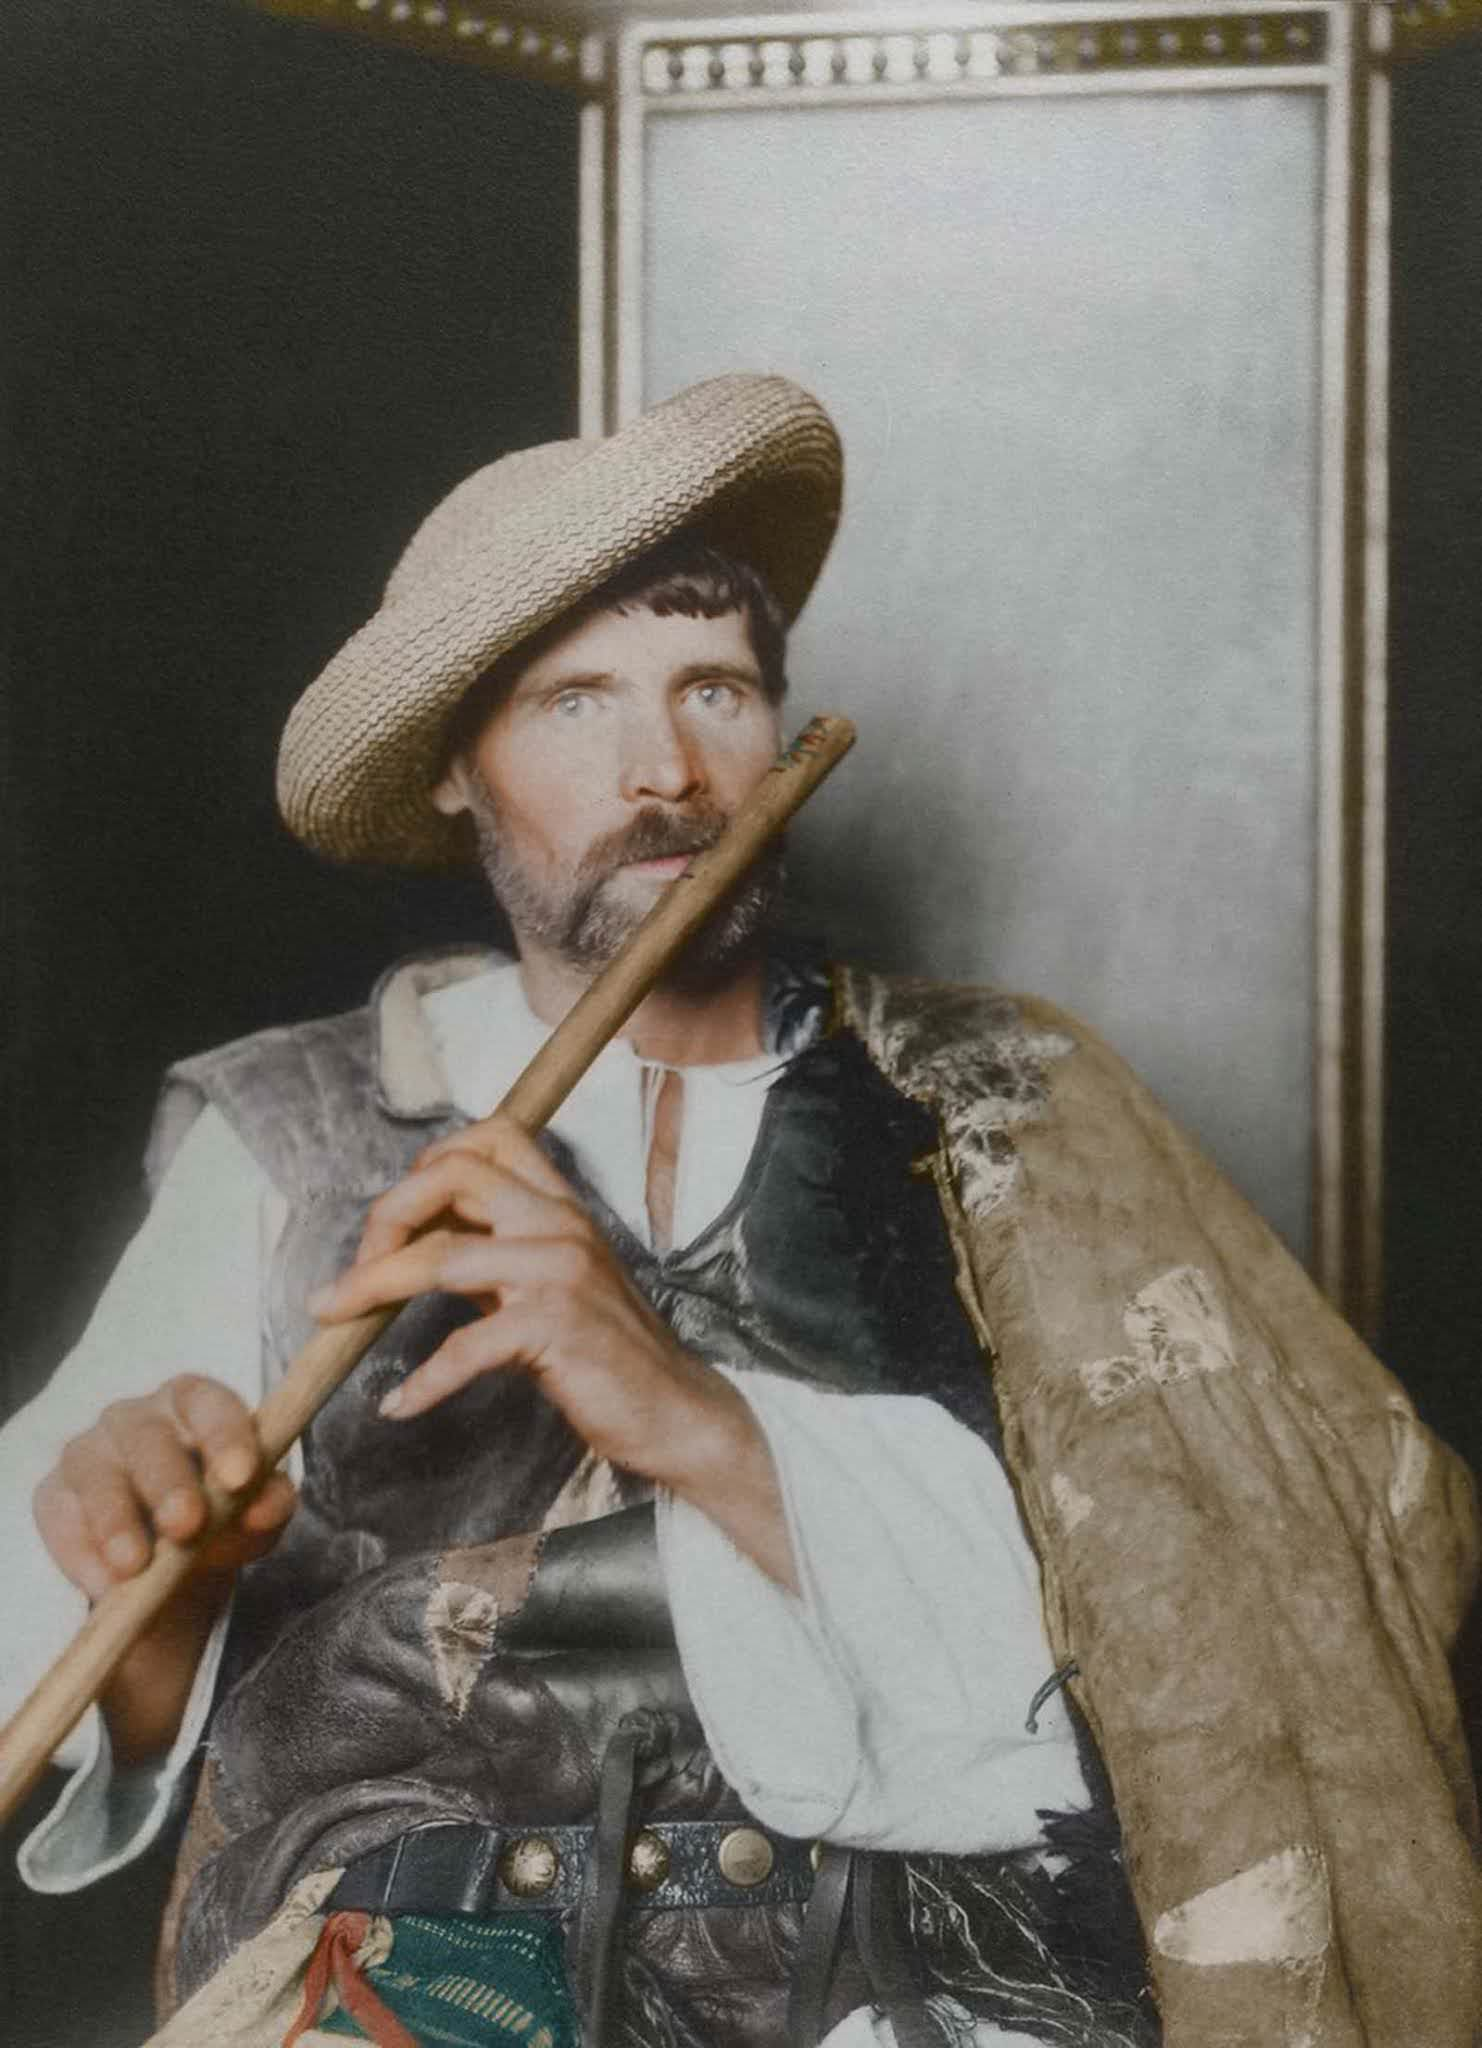 """Romanian piper."""" This particular cojoc, an embroidered sleeved sheepskin coat, is much plainer than the shepherd's version, making it a more practical, work-oriented coat, suggesting that the subject is of the working class given the lack of decoration and the straw hat. The waistcoat, known as a pi"""